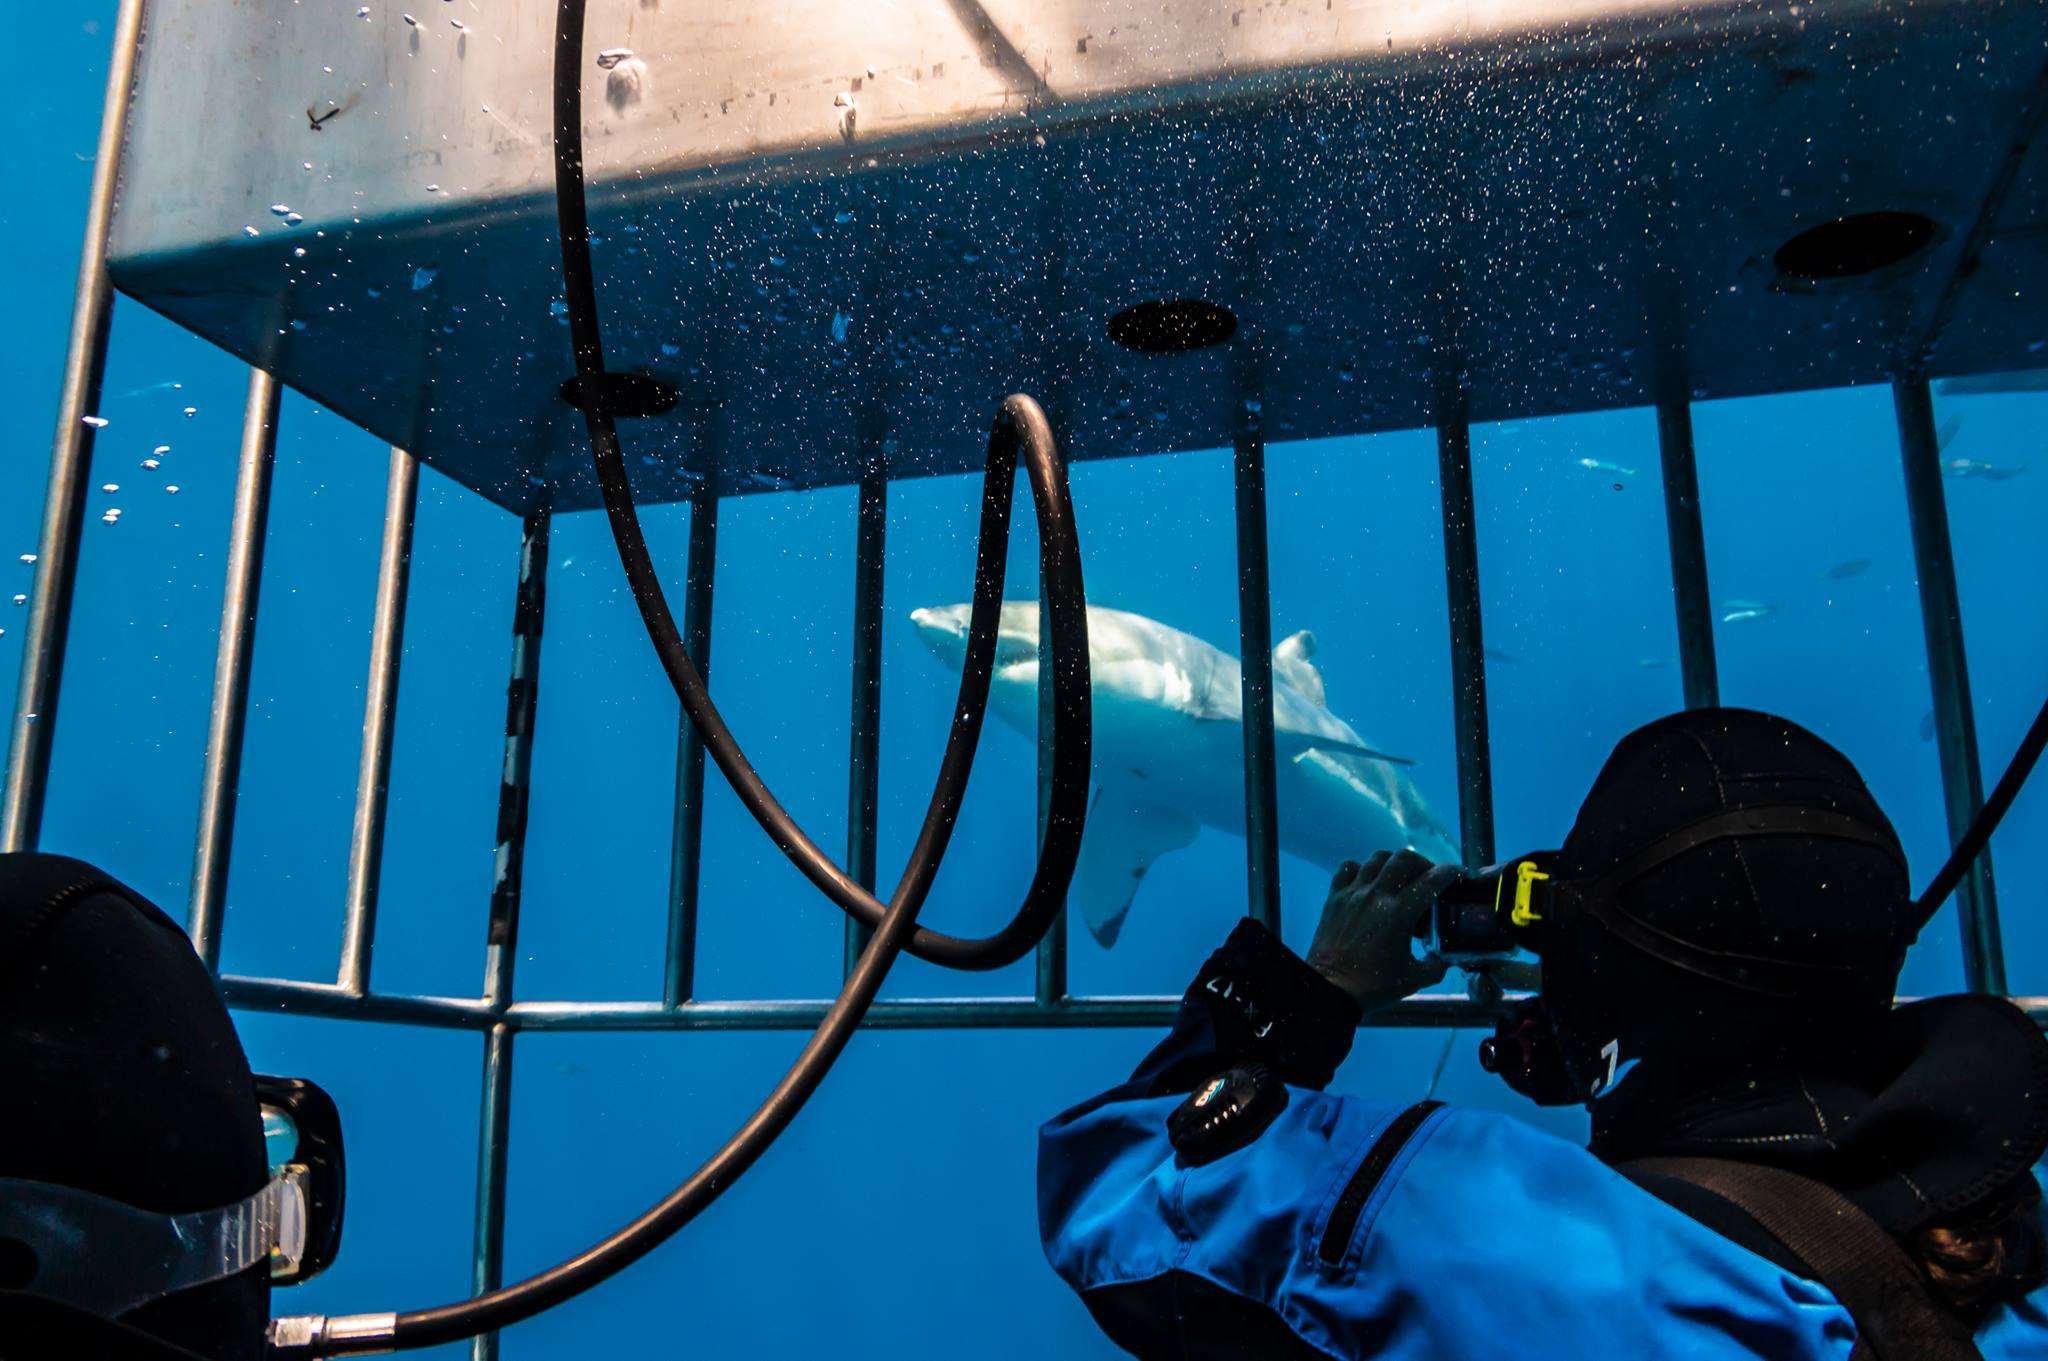 Colleen and her GoPro inside a human cage with sharks at large.